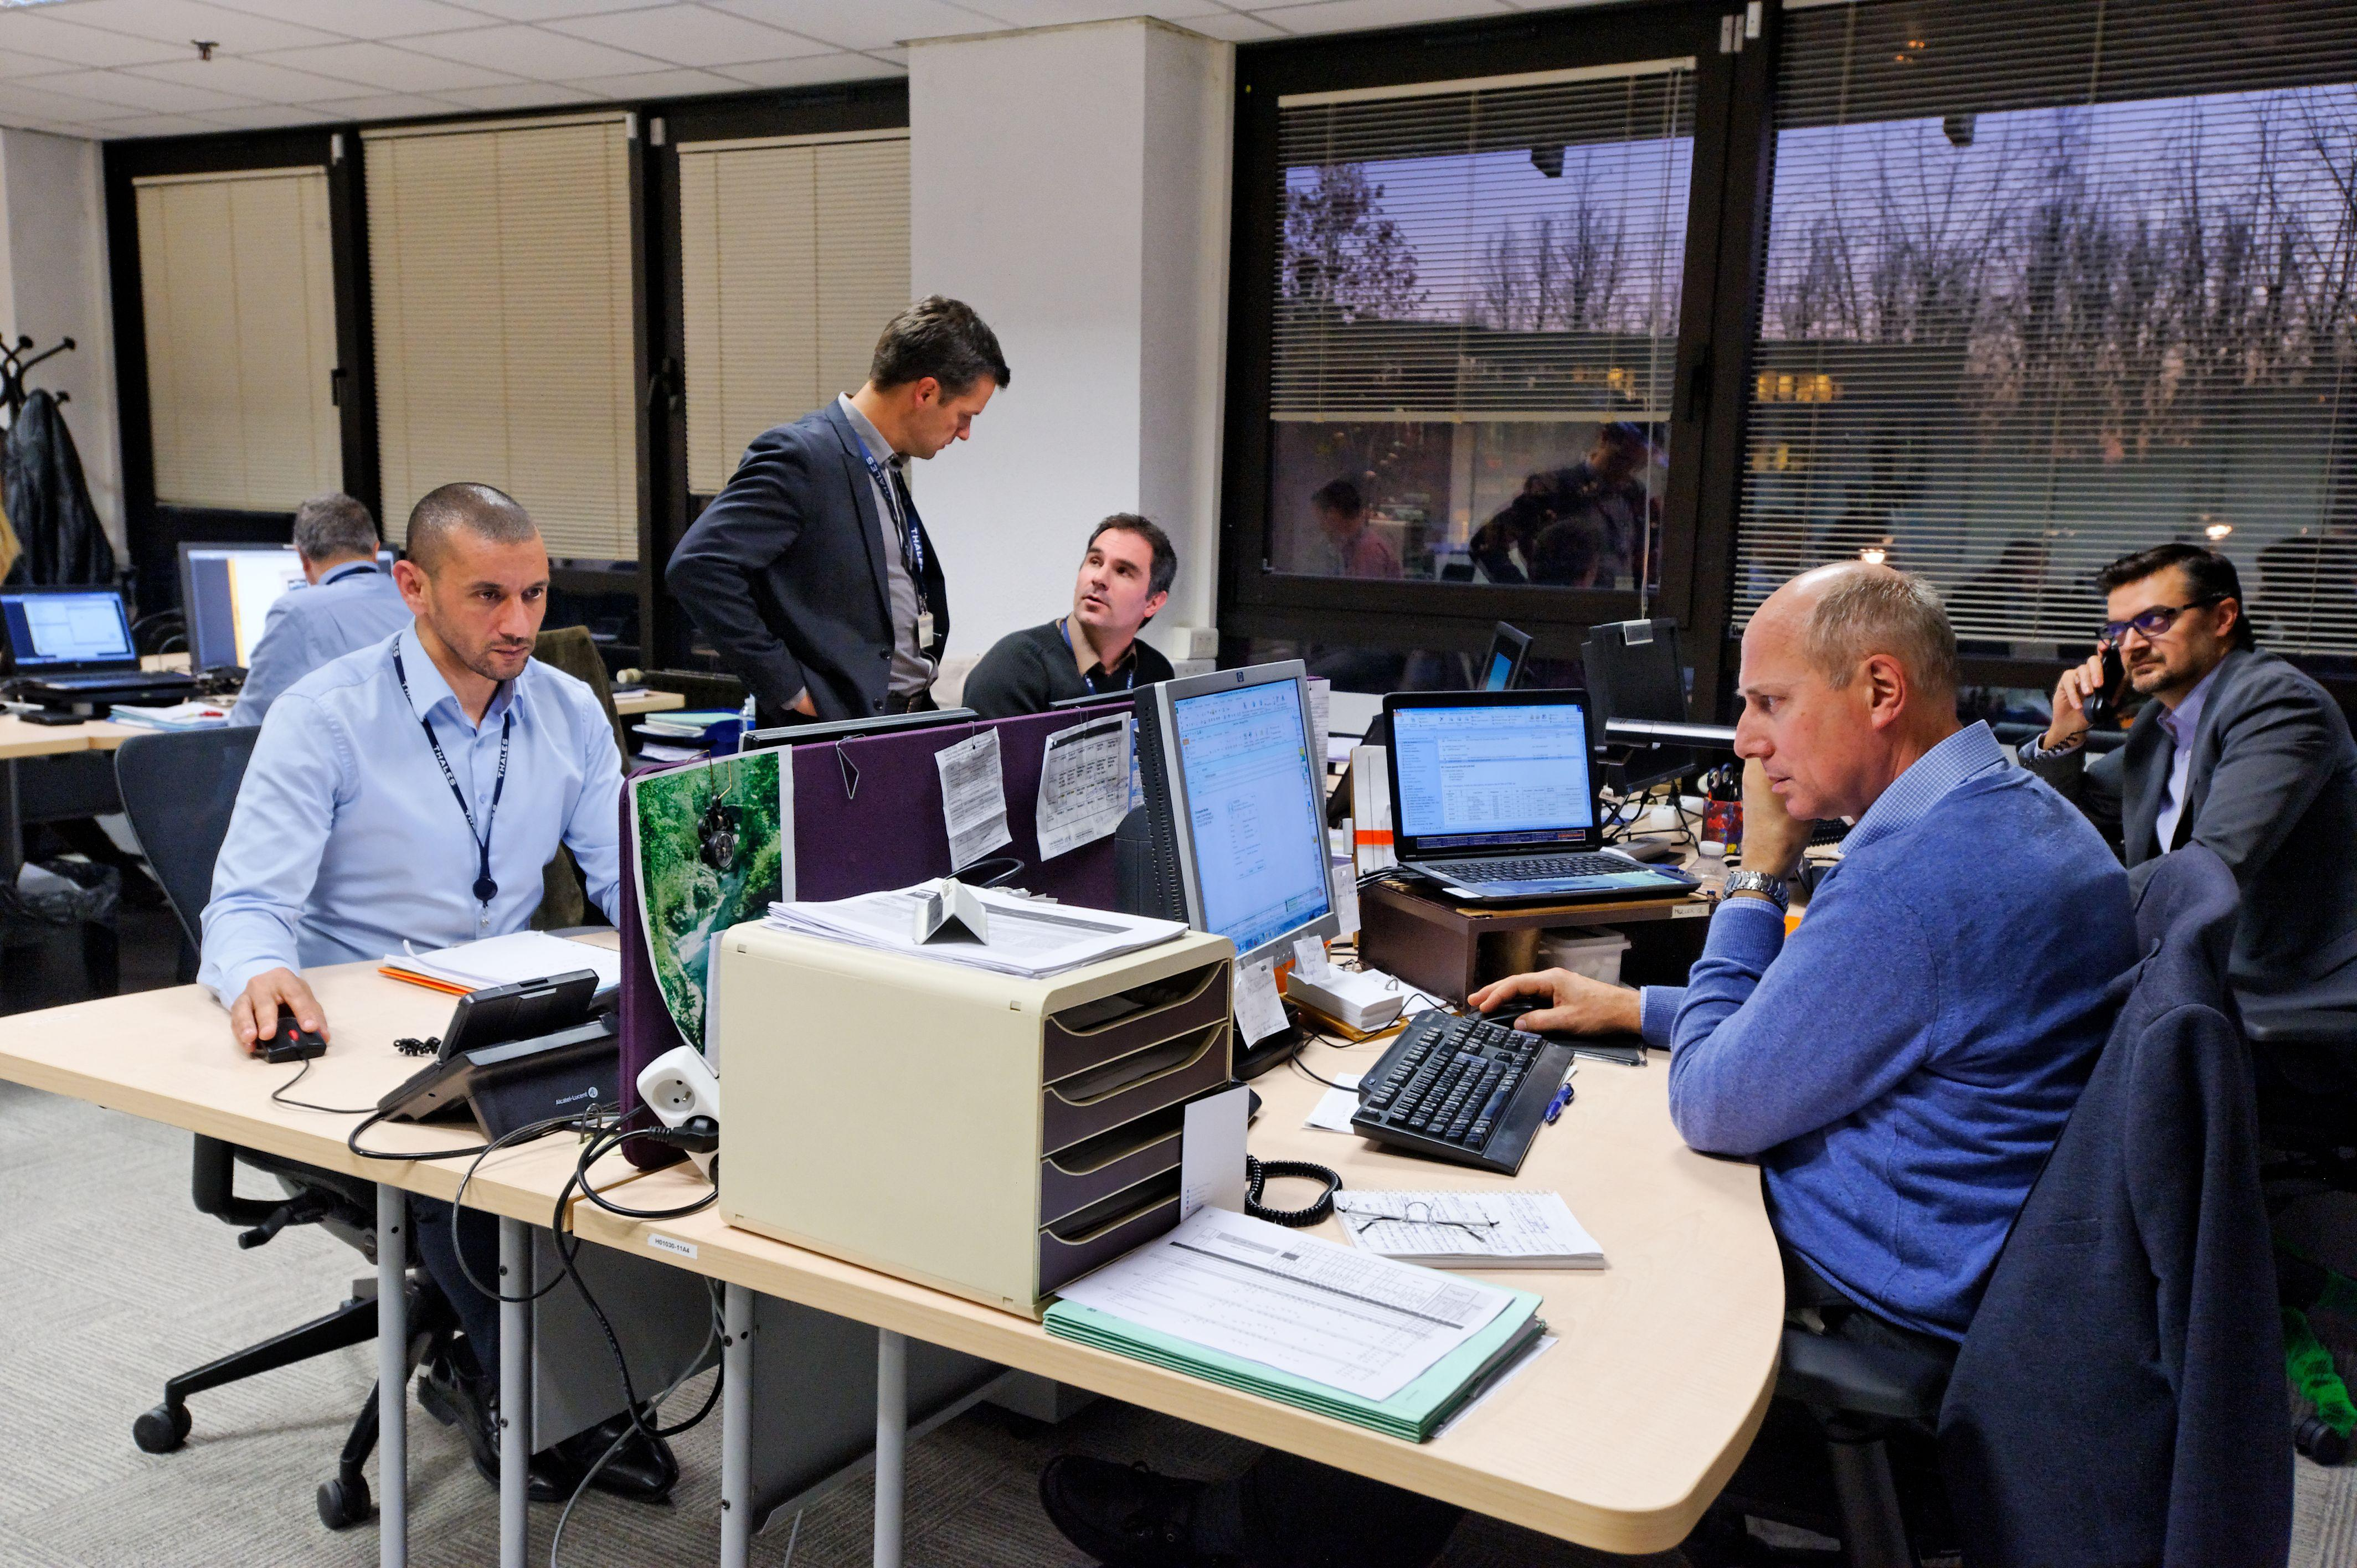 Customer support for land optronics - Thalesgroup